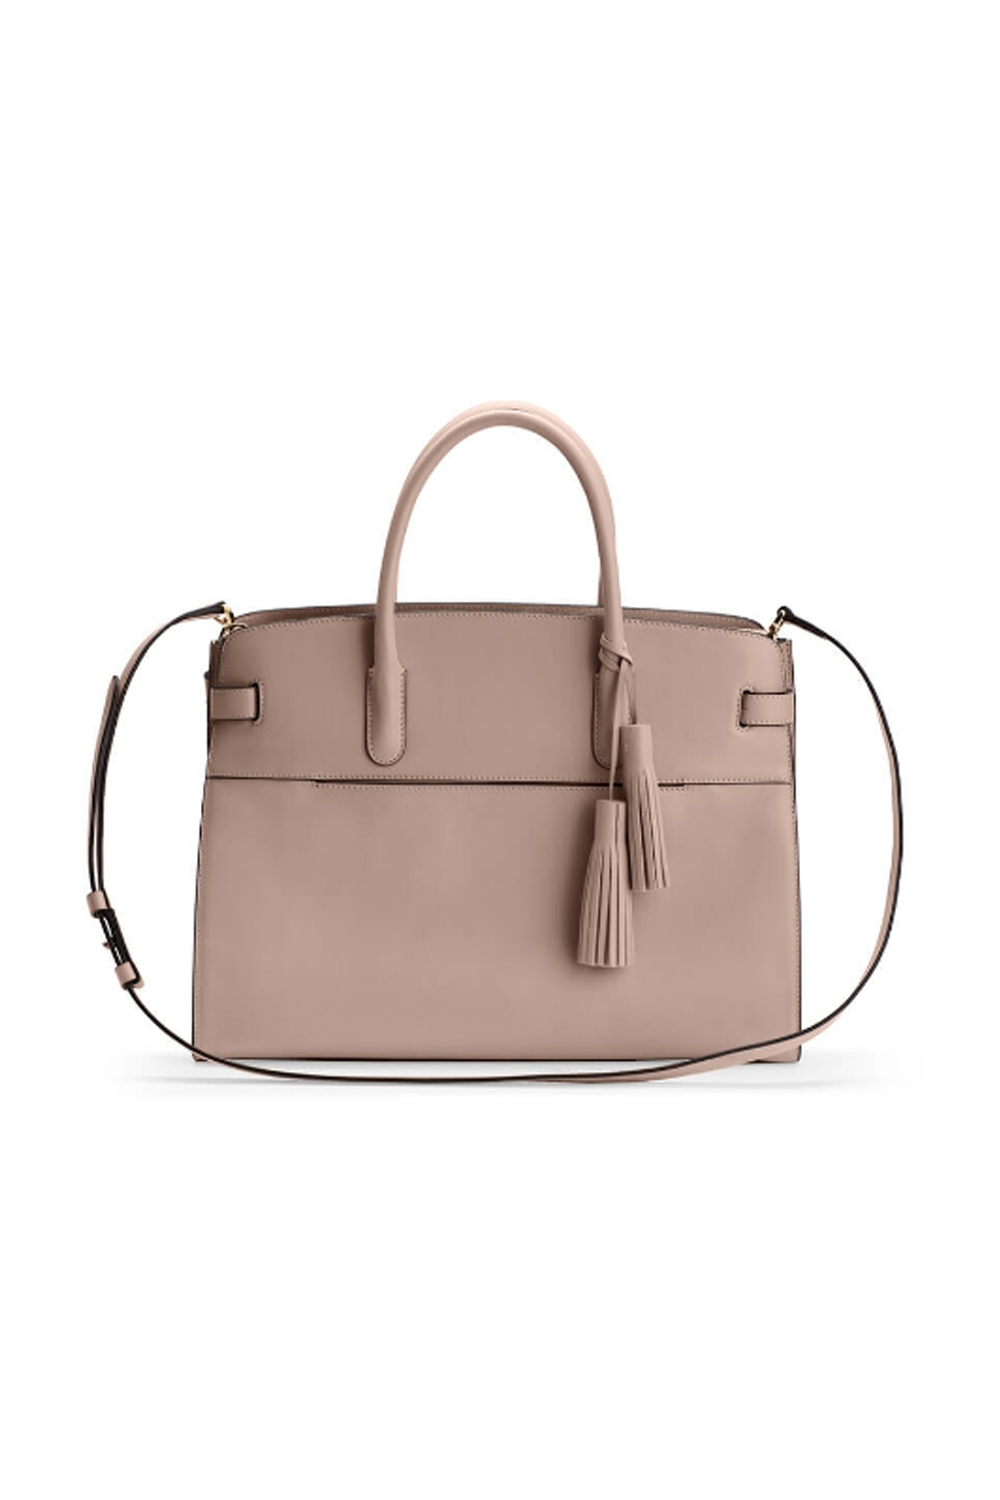 42452fabbe5f25 13 Best Laptop Bags for Women 2019 - Stylish Computer Totes and Handbags